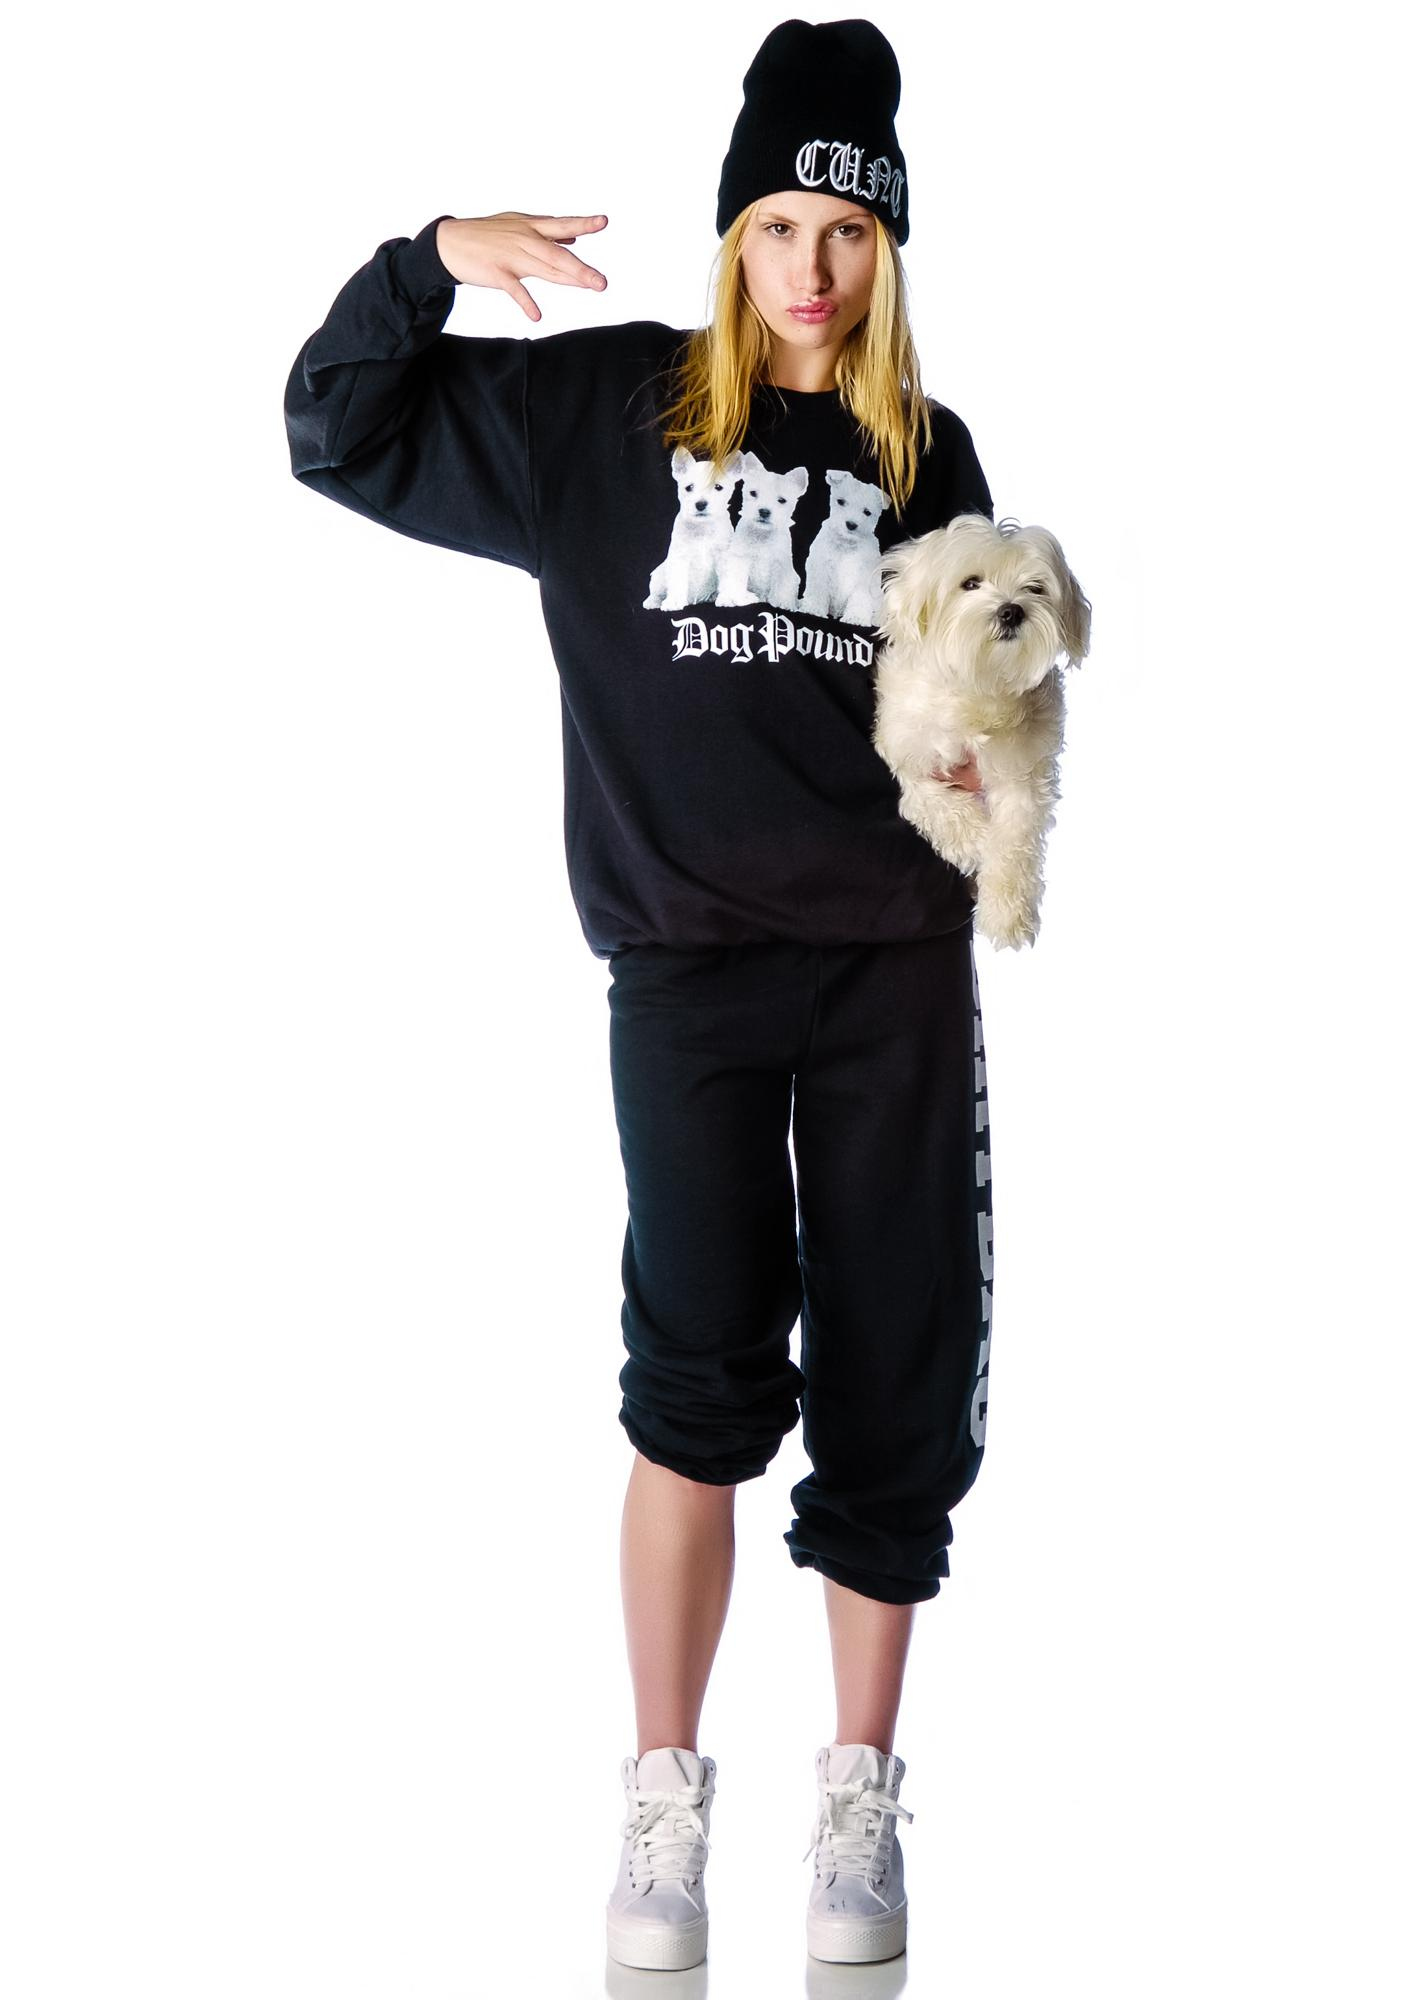 Petals and Peacocks Dog Pound Sweatshirt